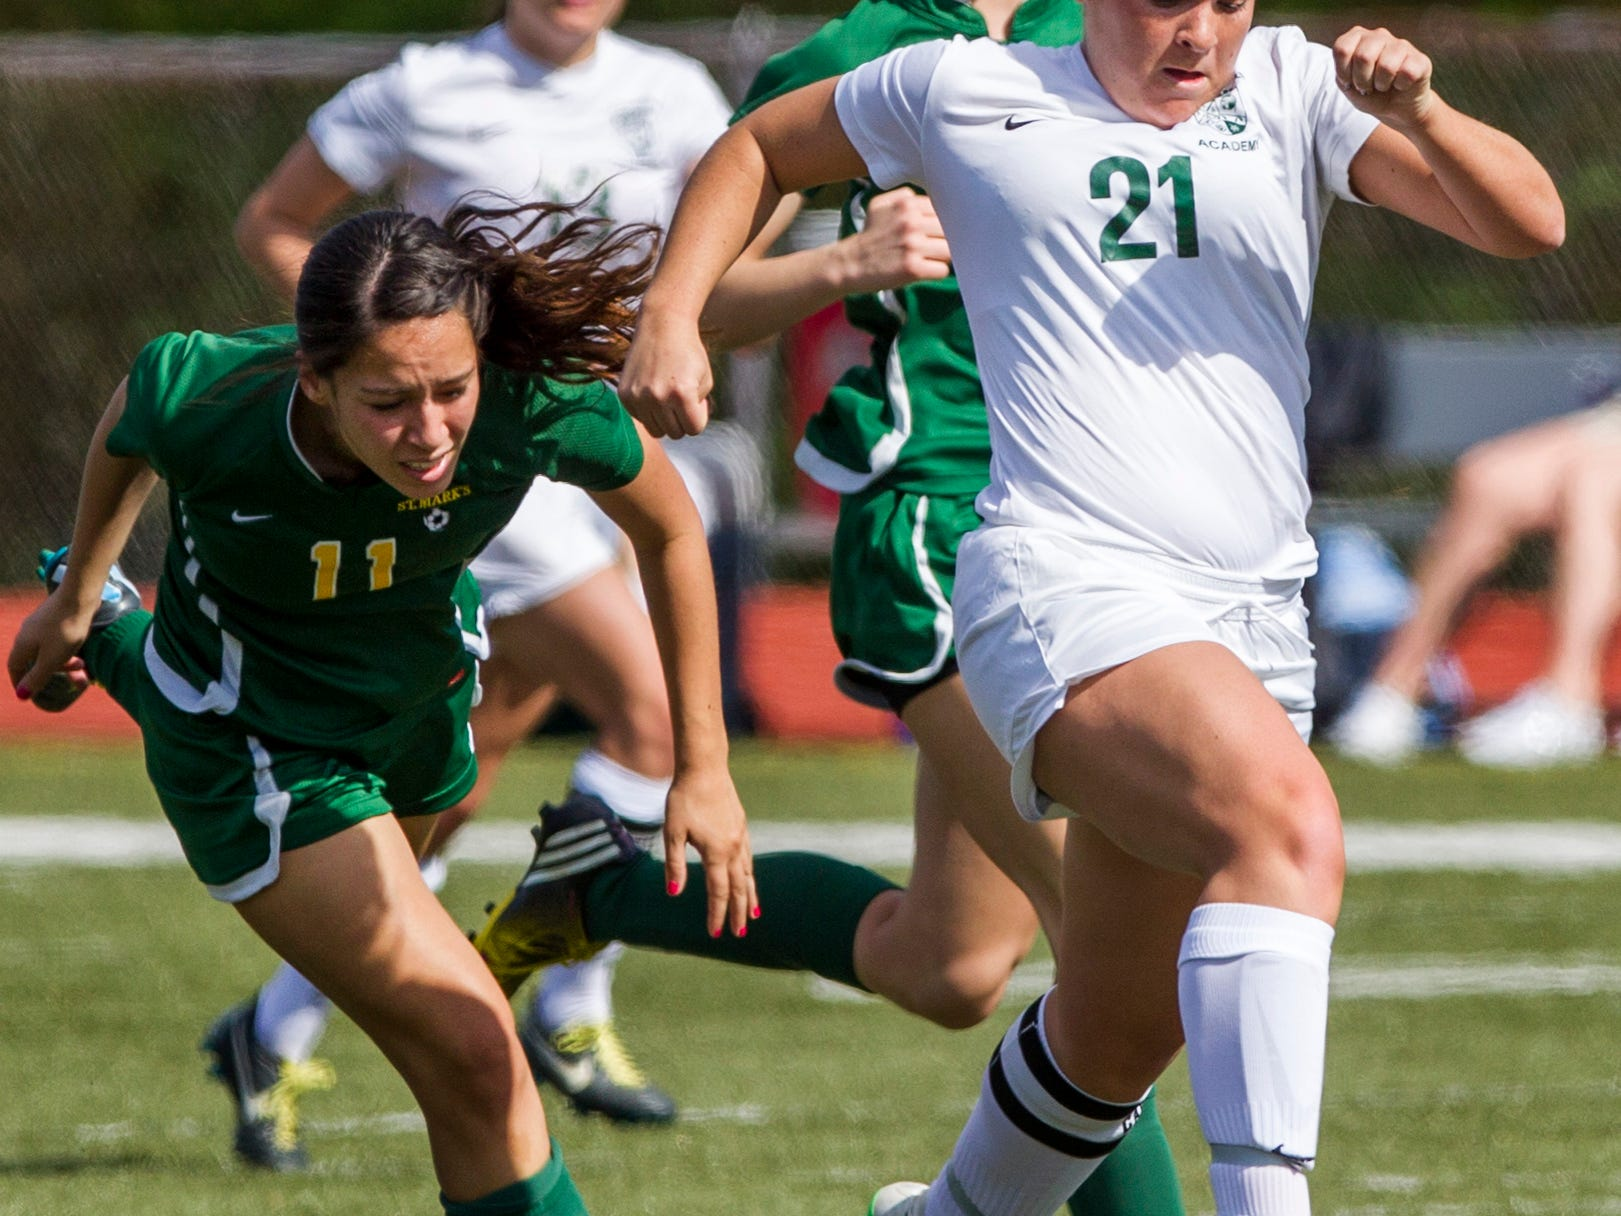 Archmere's Gillian Sweeney breaks away from St. Mark's Rachel McCabe during a game at Archmere Wednesday afternoon. Archmere defeated St. Mark's 2-1.